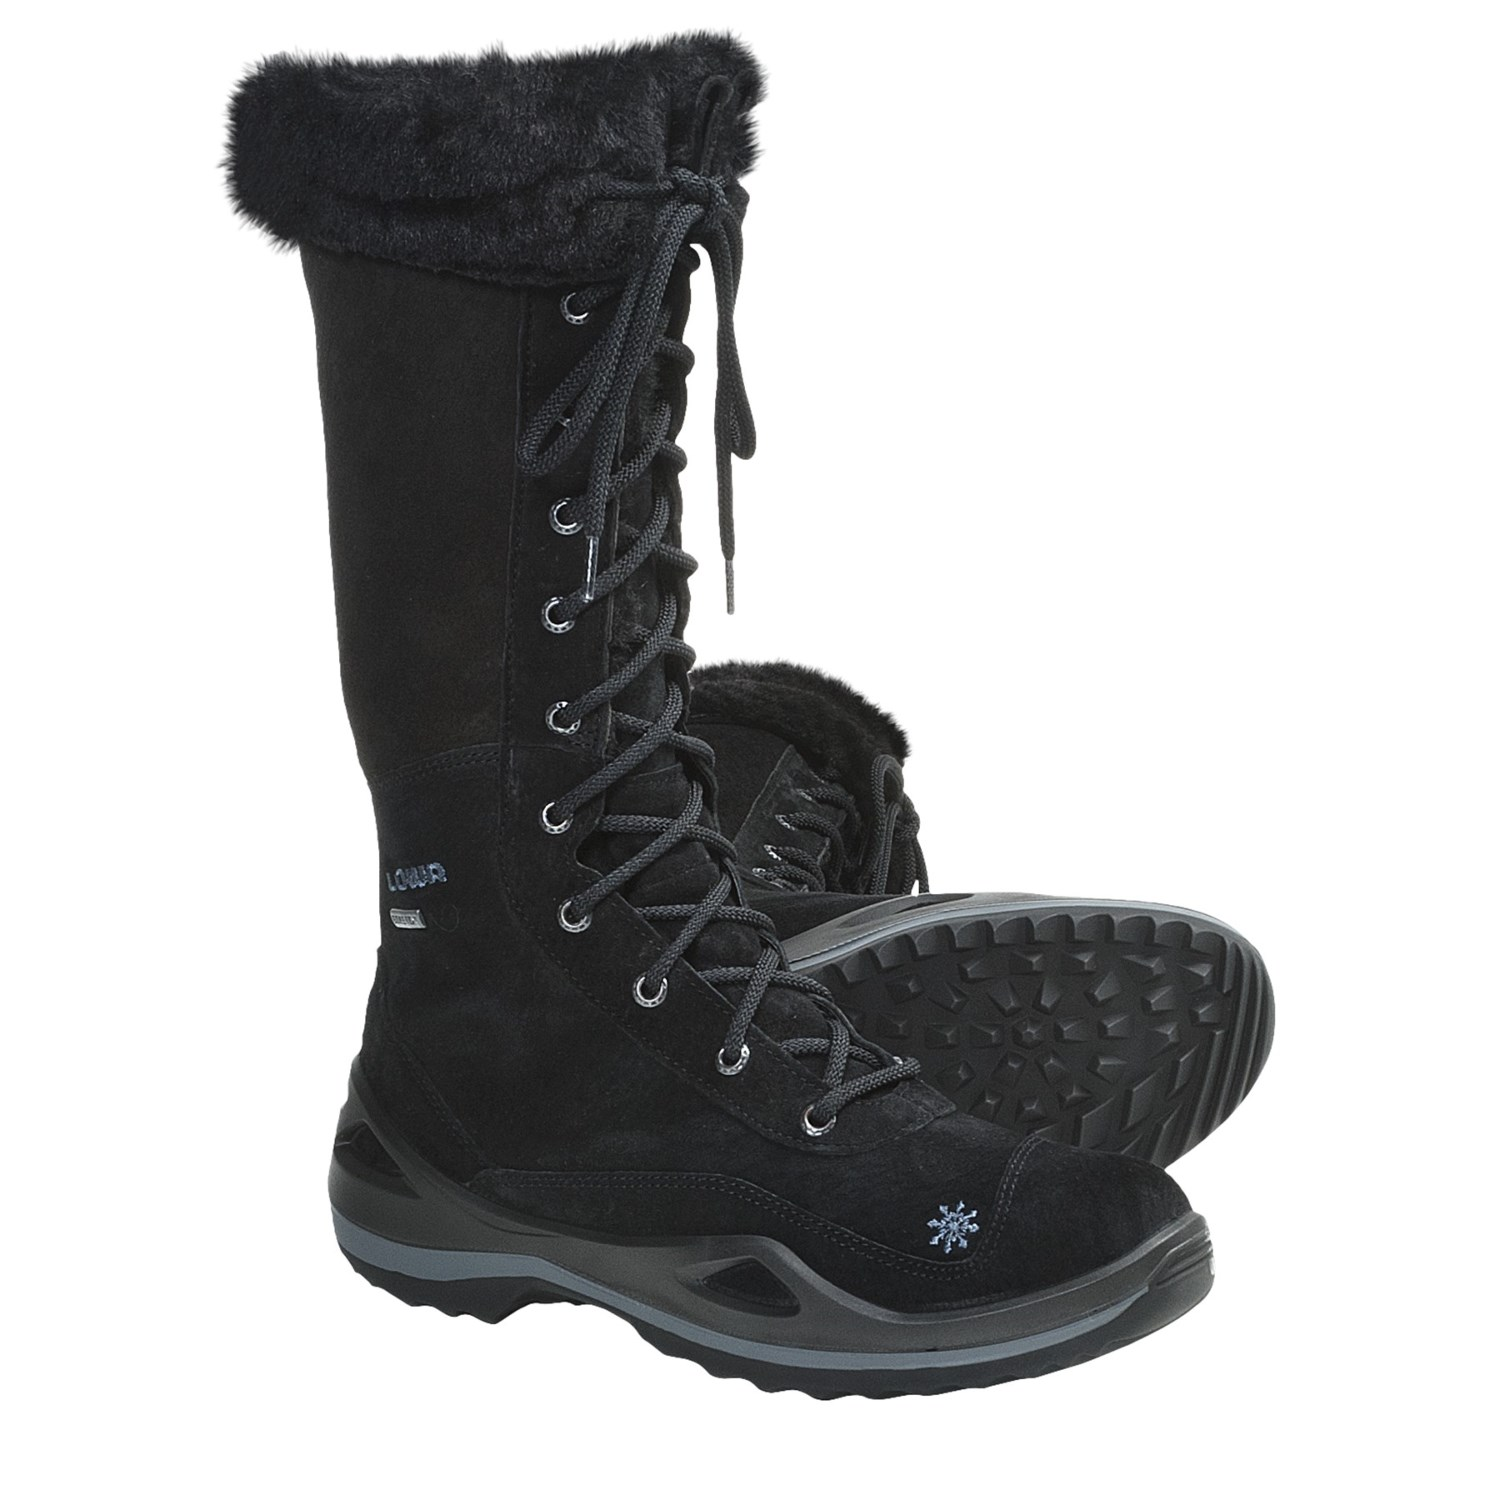 Women;s Waterproof Winter Boots Wide Width | Santa Barbara ...